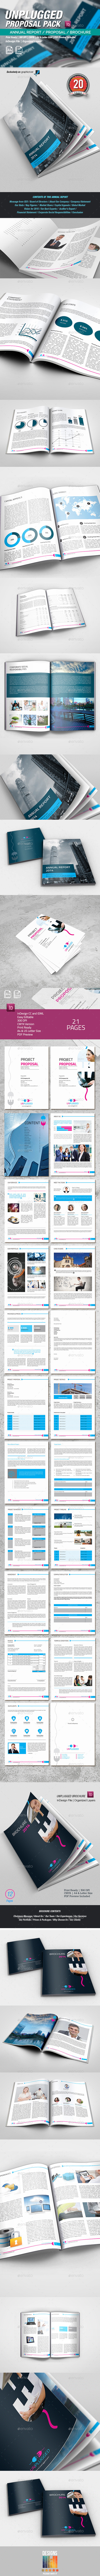 Unplugged Multipurpose Proposal Pack - Proposals & Invoices Stationery